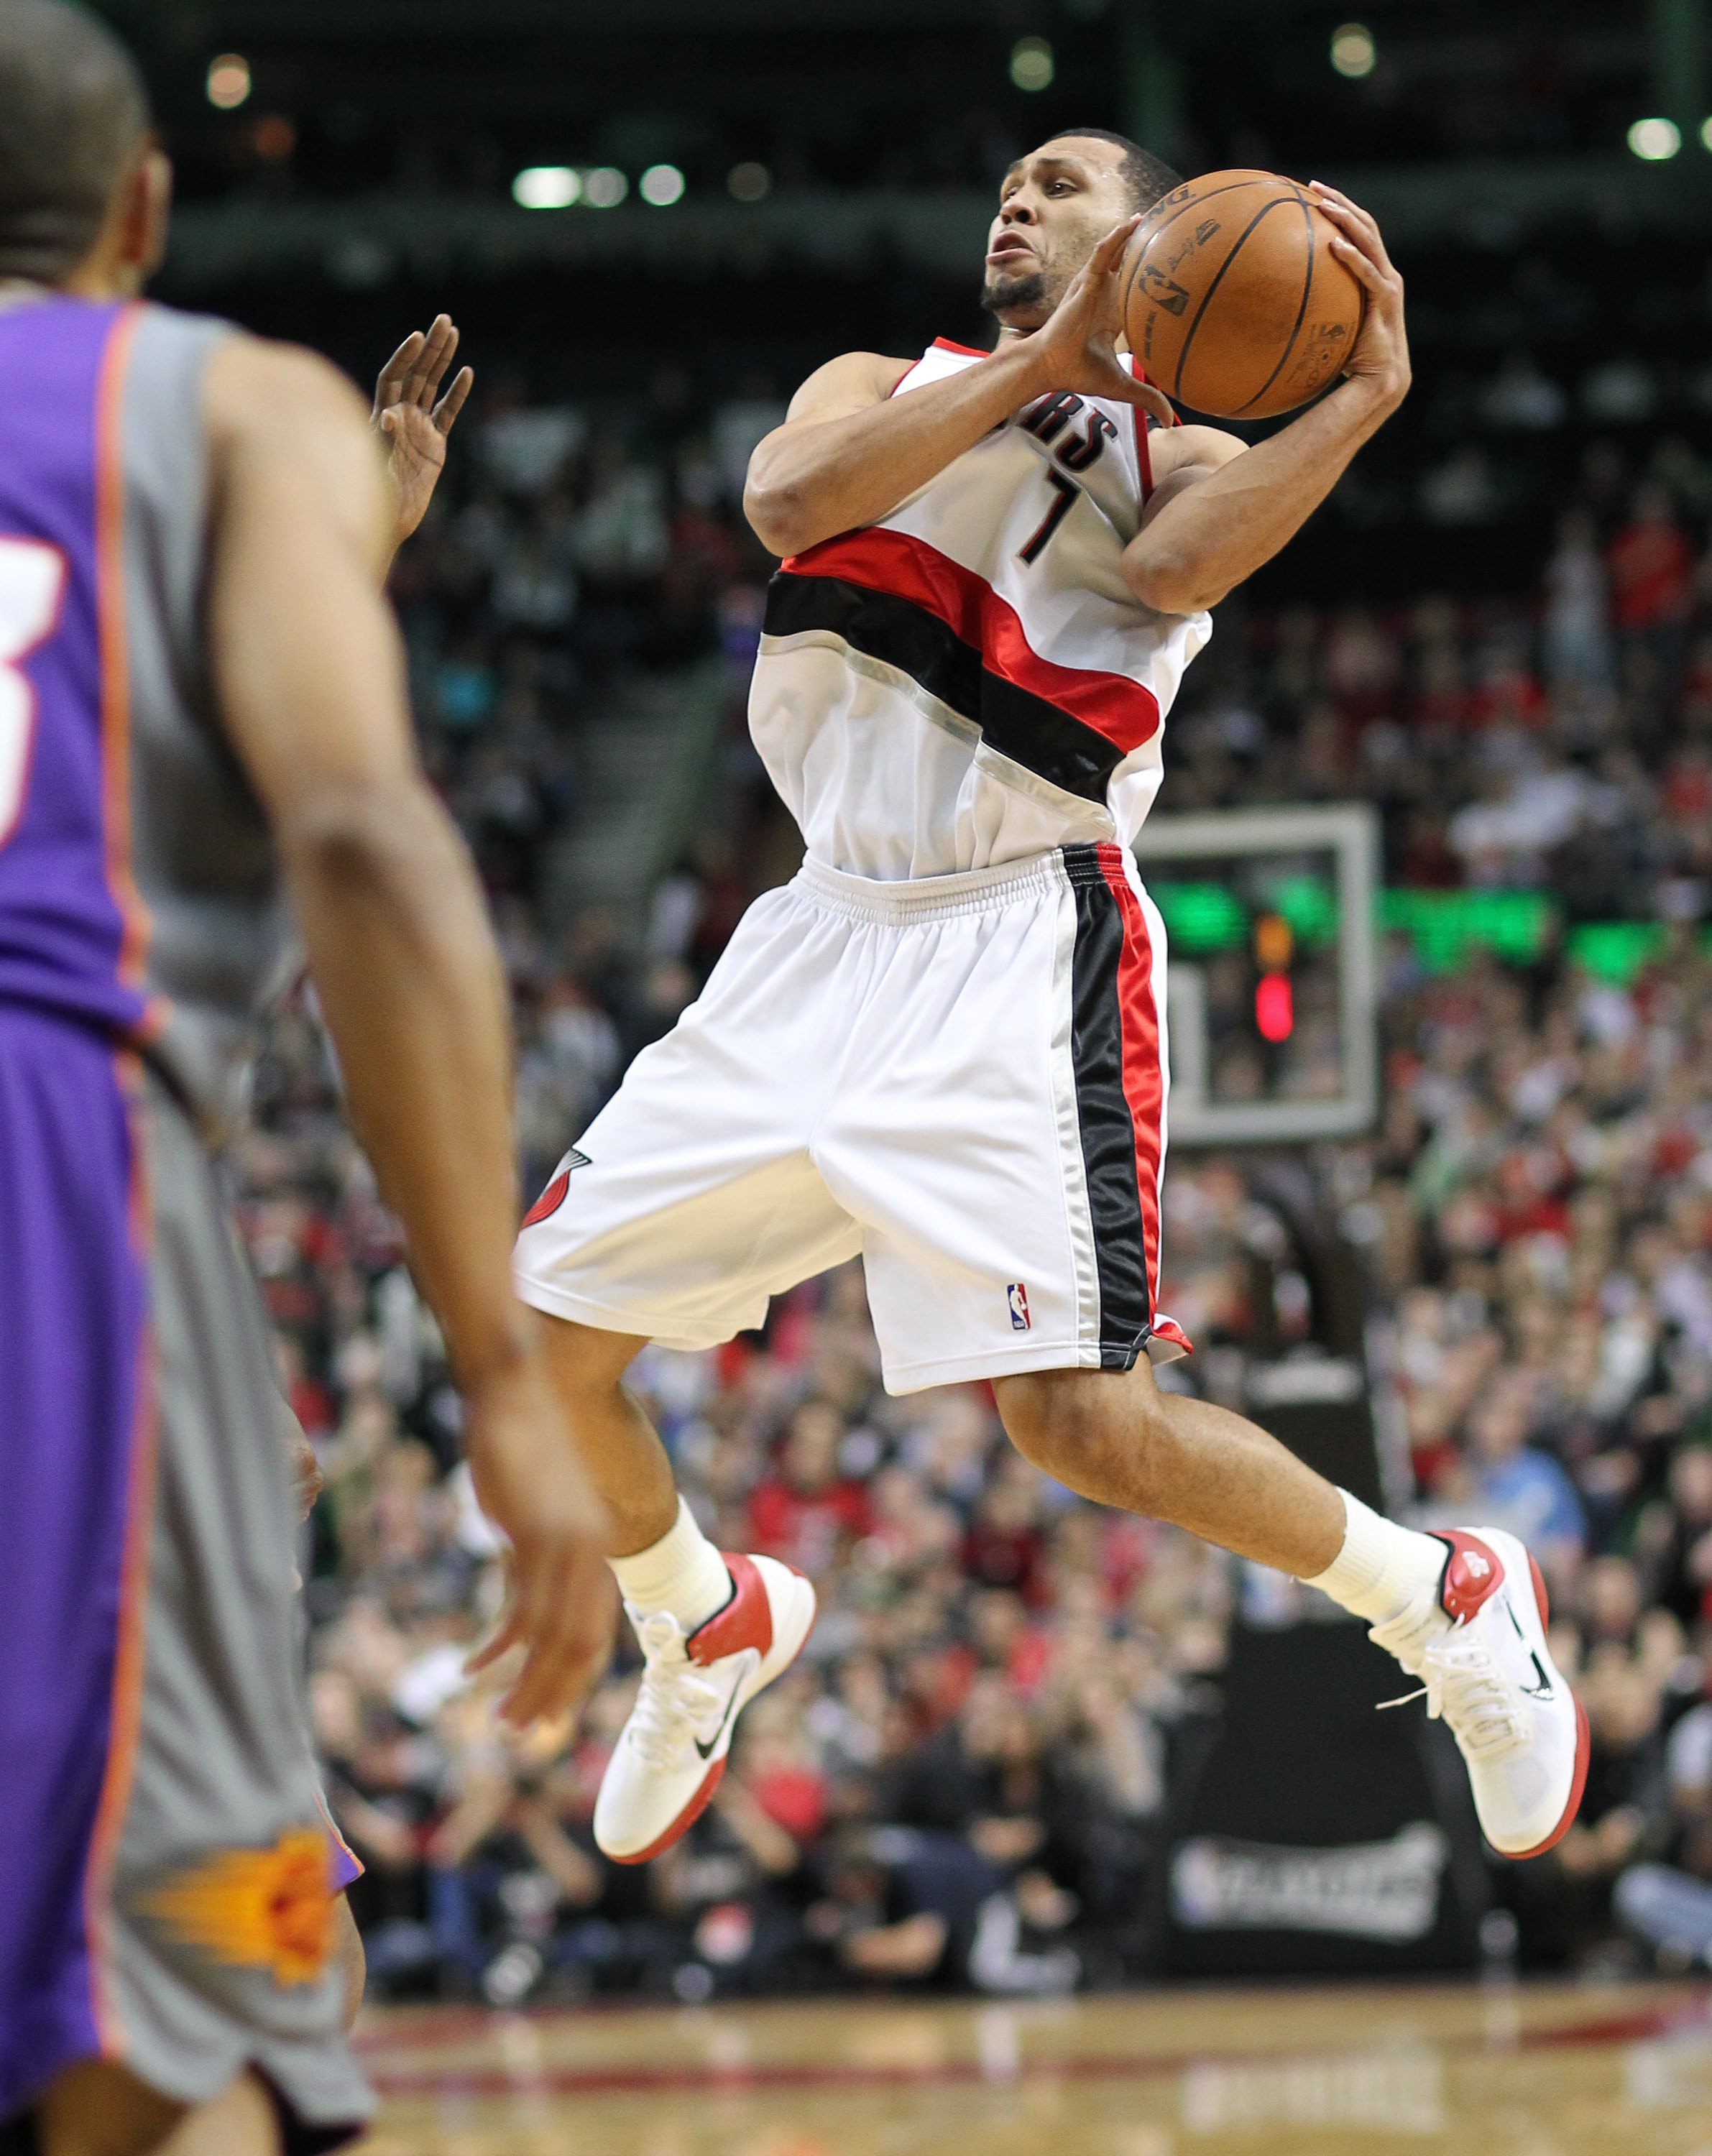 PORTLAND, OR - APRIL 29:  Brandon Roy #7 of the Portland Trail Blazers in action against the Phoenix Suns during Game Six of the Western Conference Quarterfinals of the NBA Playoffs on April 29, 2010 at the Rose Garden in Portland, Oregon. The Suns defeat